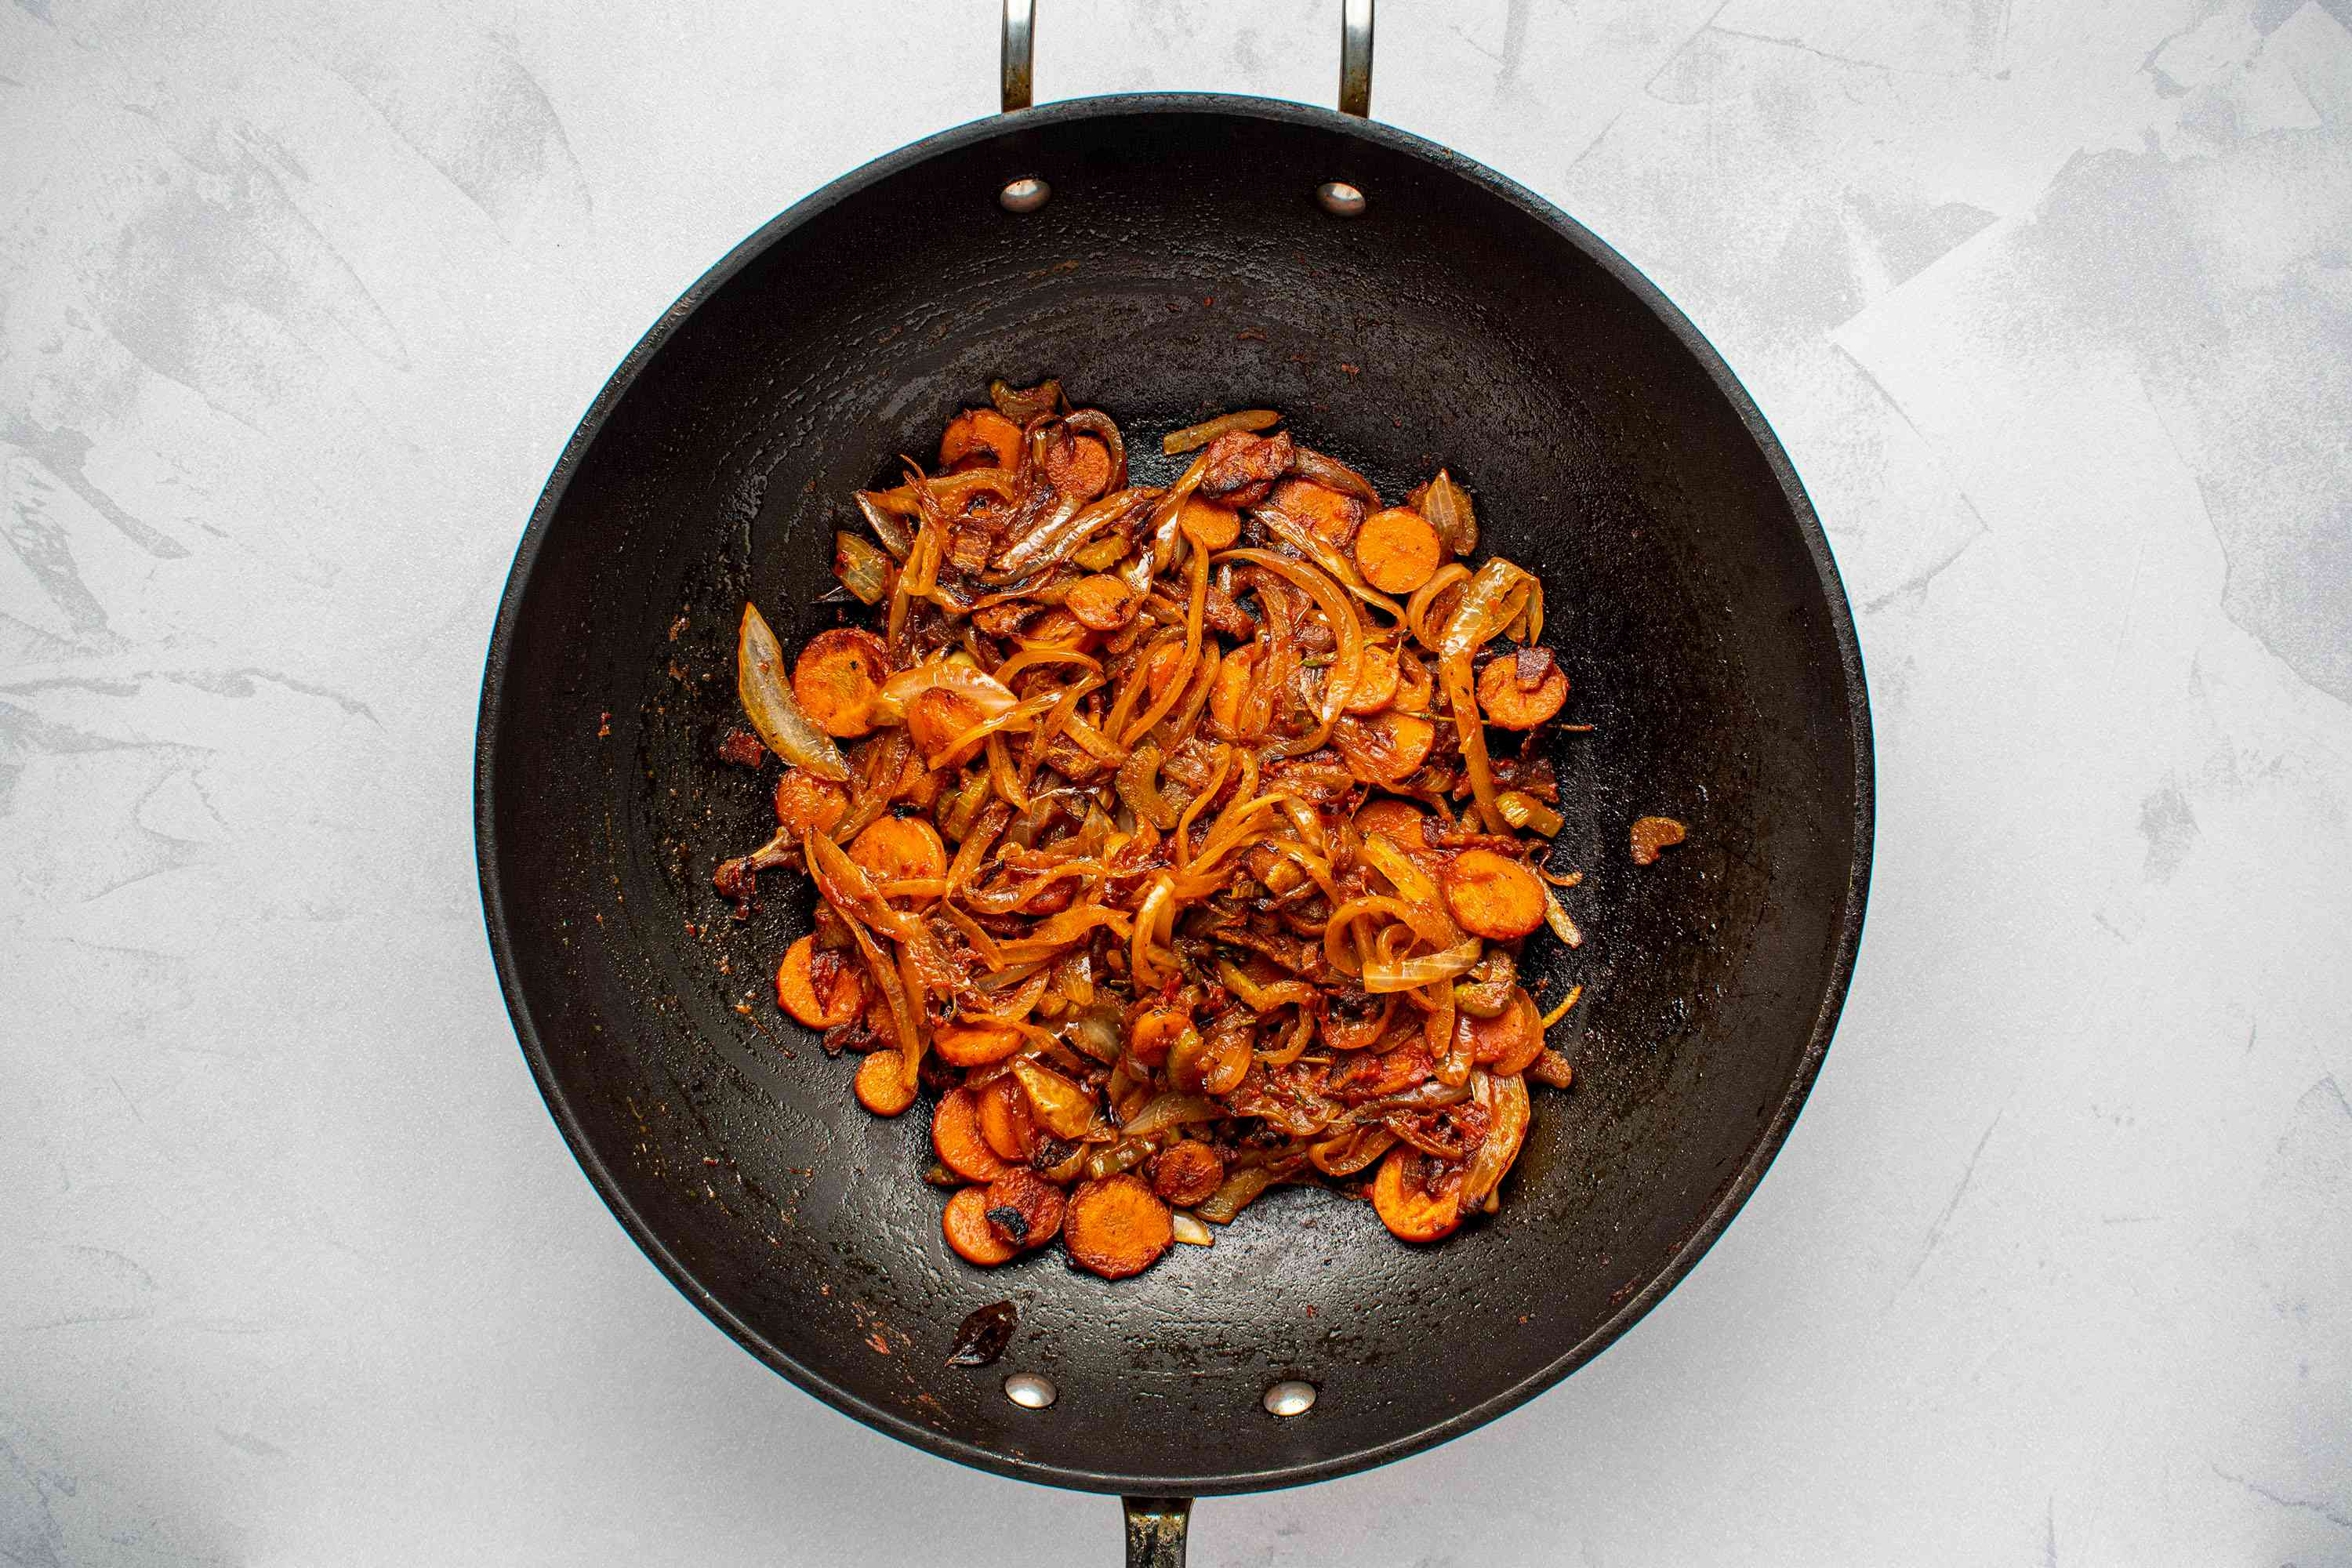 tomato paste added to the vegetable mixture in a wok